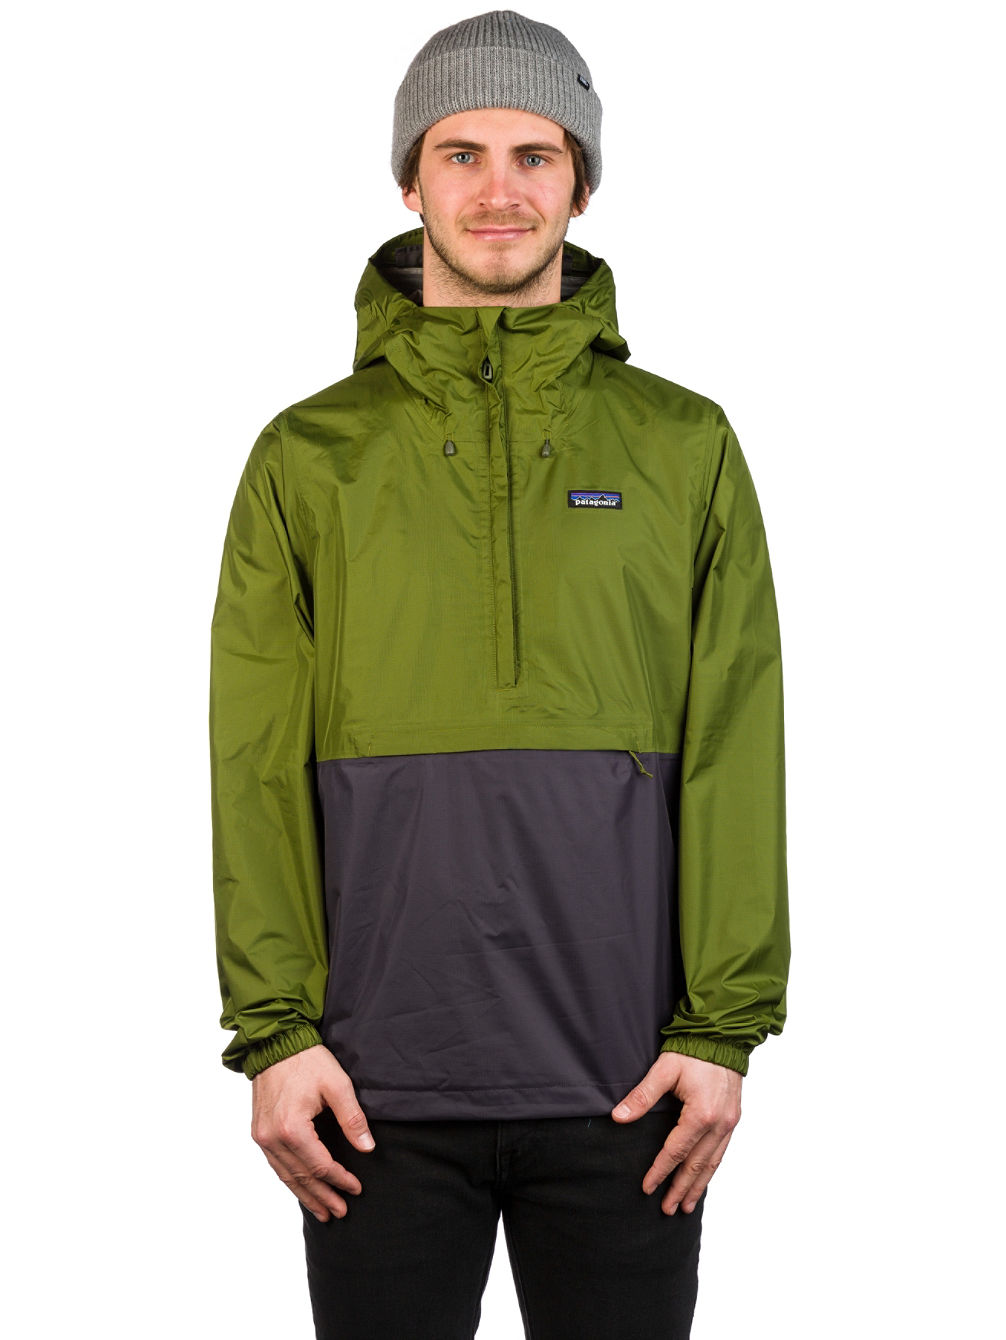 reputable site 56003 6a614 Torrentshell Anorak